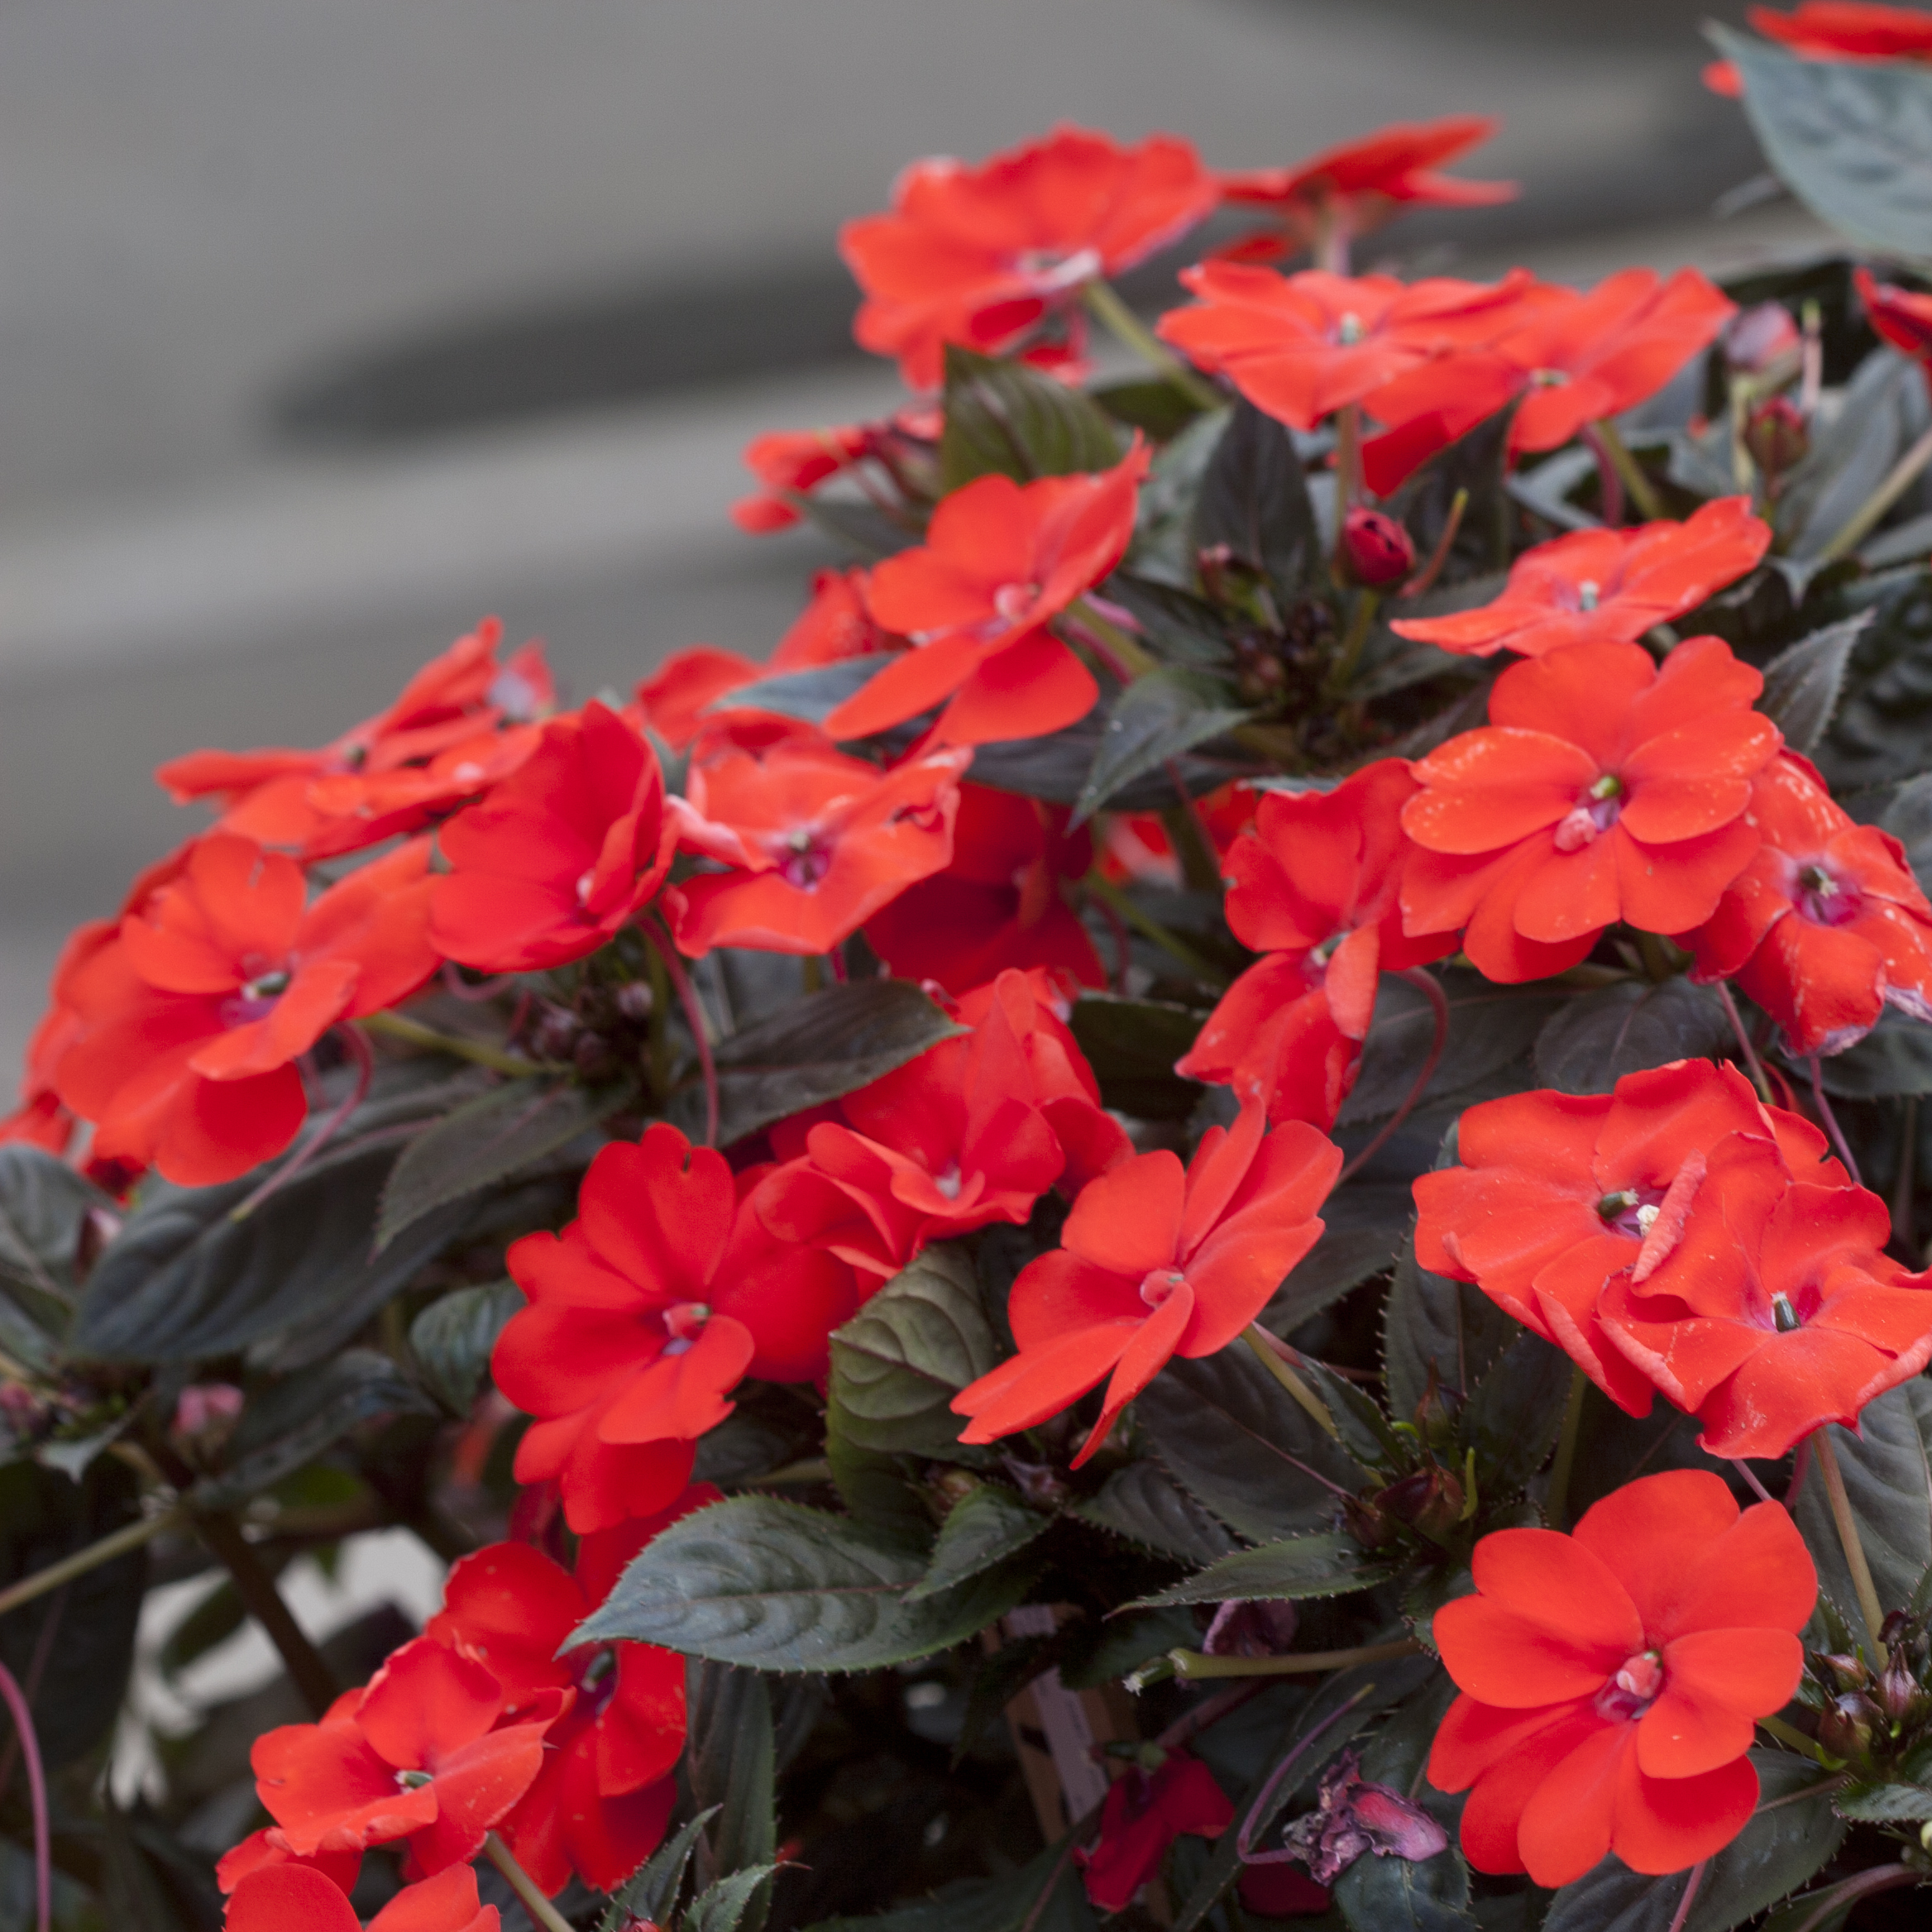 Impatiens impatiens sunpatiens series is an interspecific hybrid of impatiens that grows just as well in full sun as in full shade with blooms closer in size to new izmirmasajfo